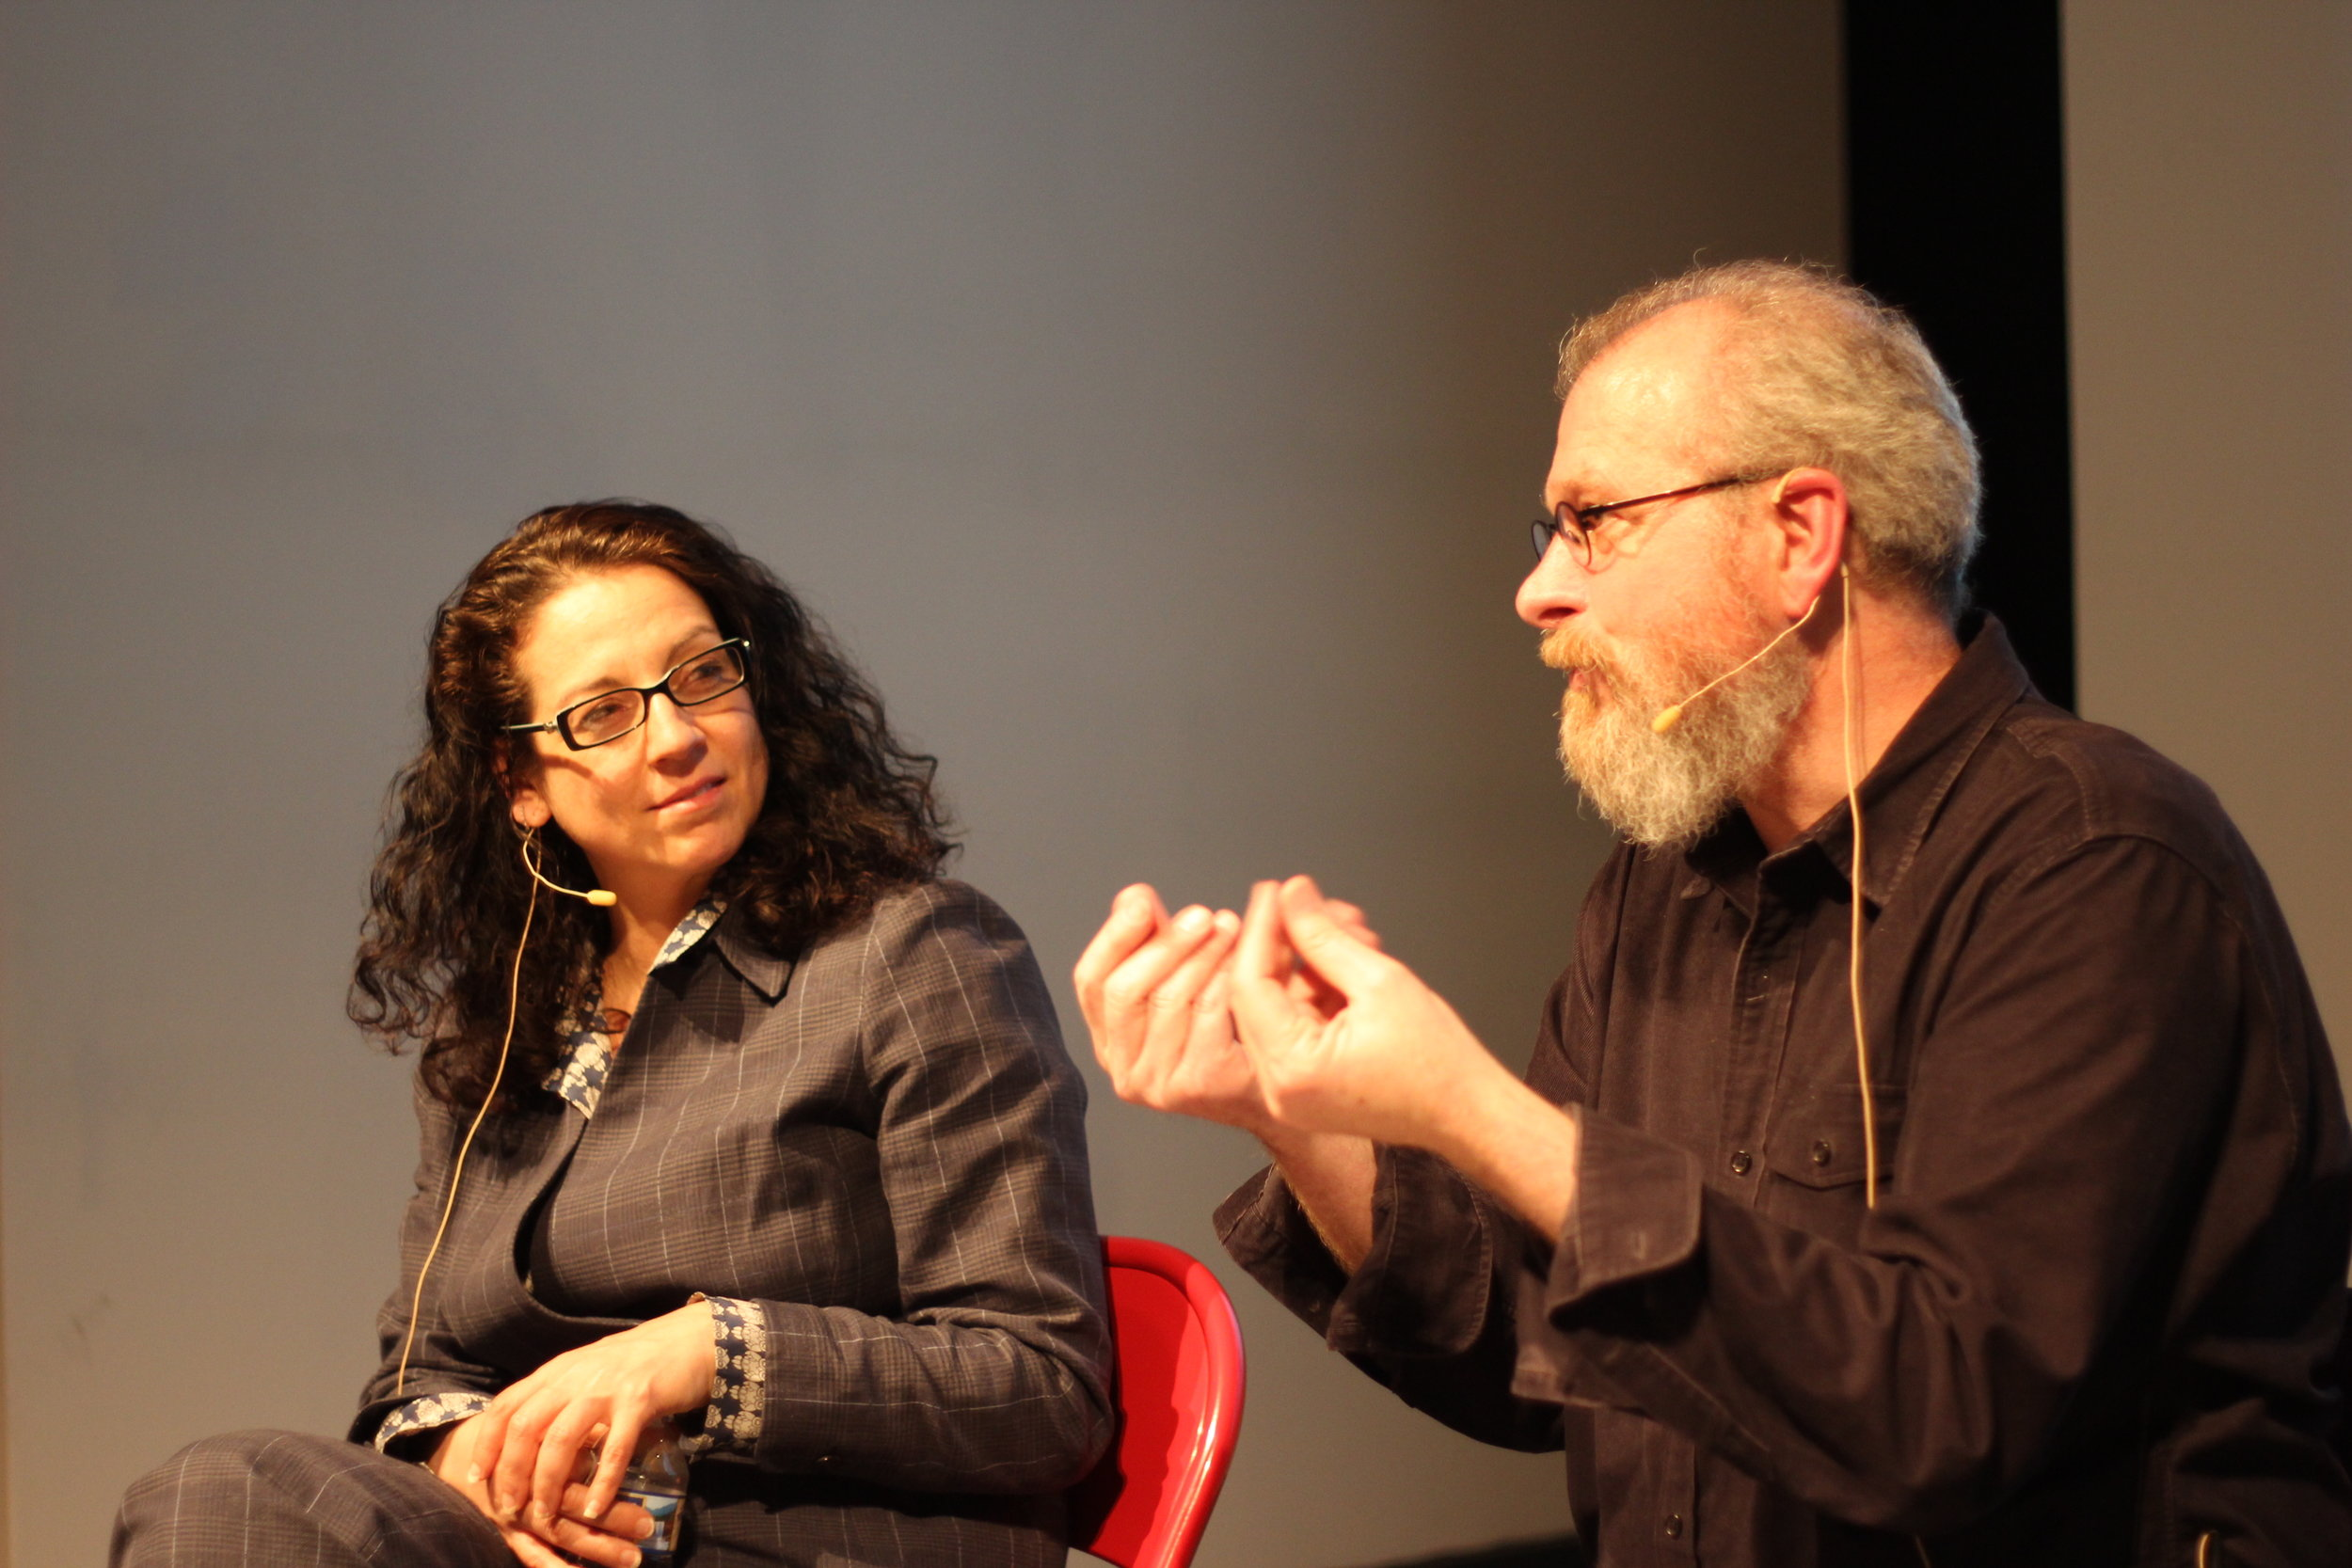 Kristen Ghodsee and João Biehl at the Slought Foundation on April 19, 2018